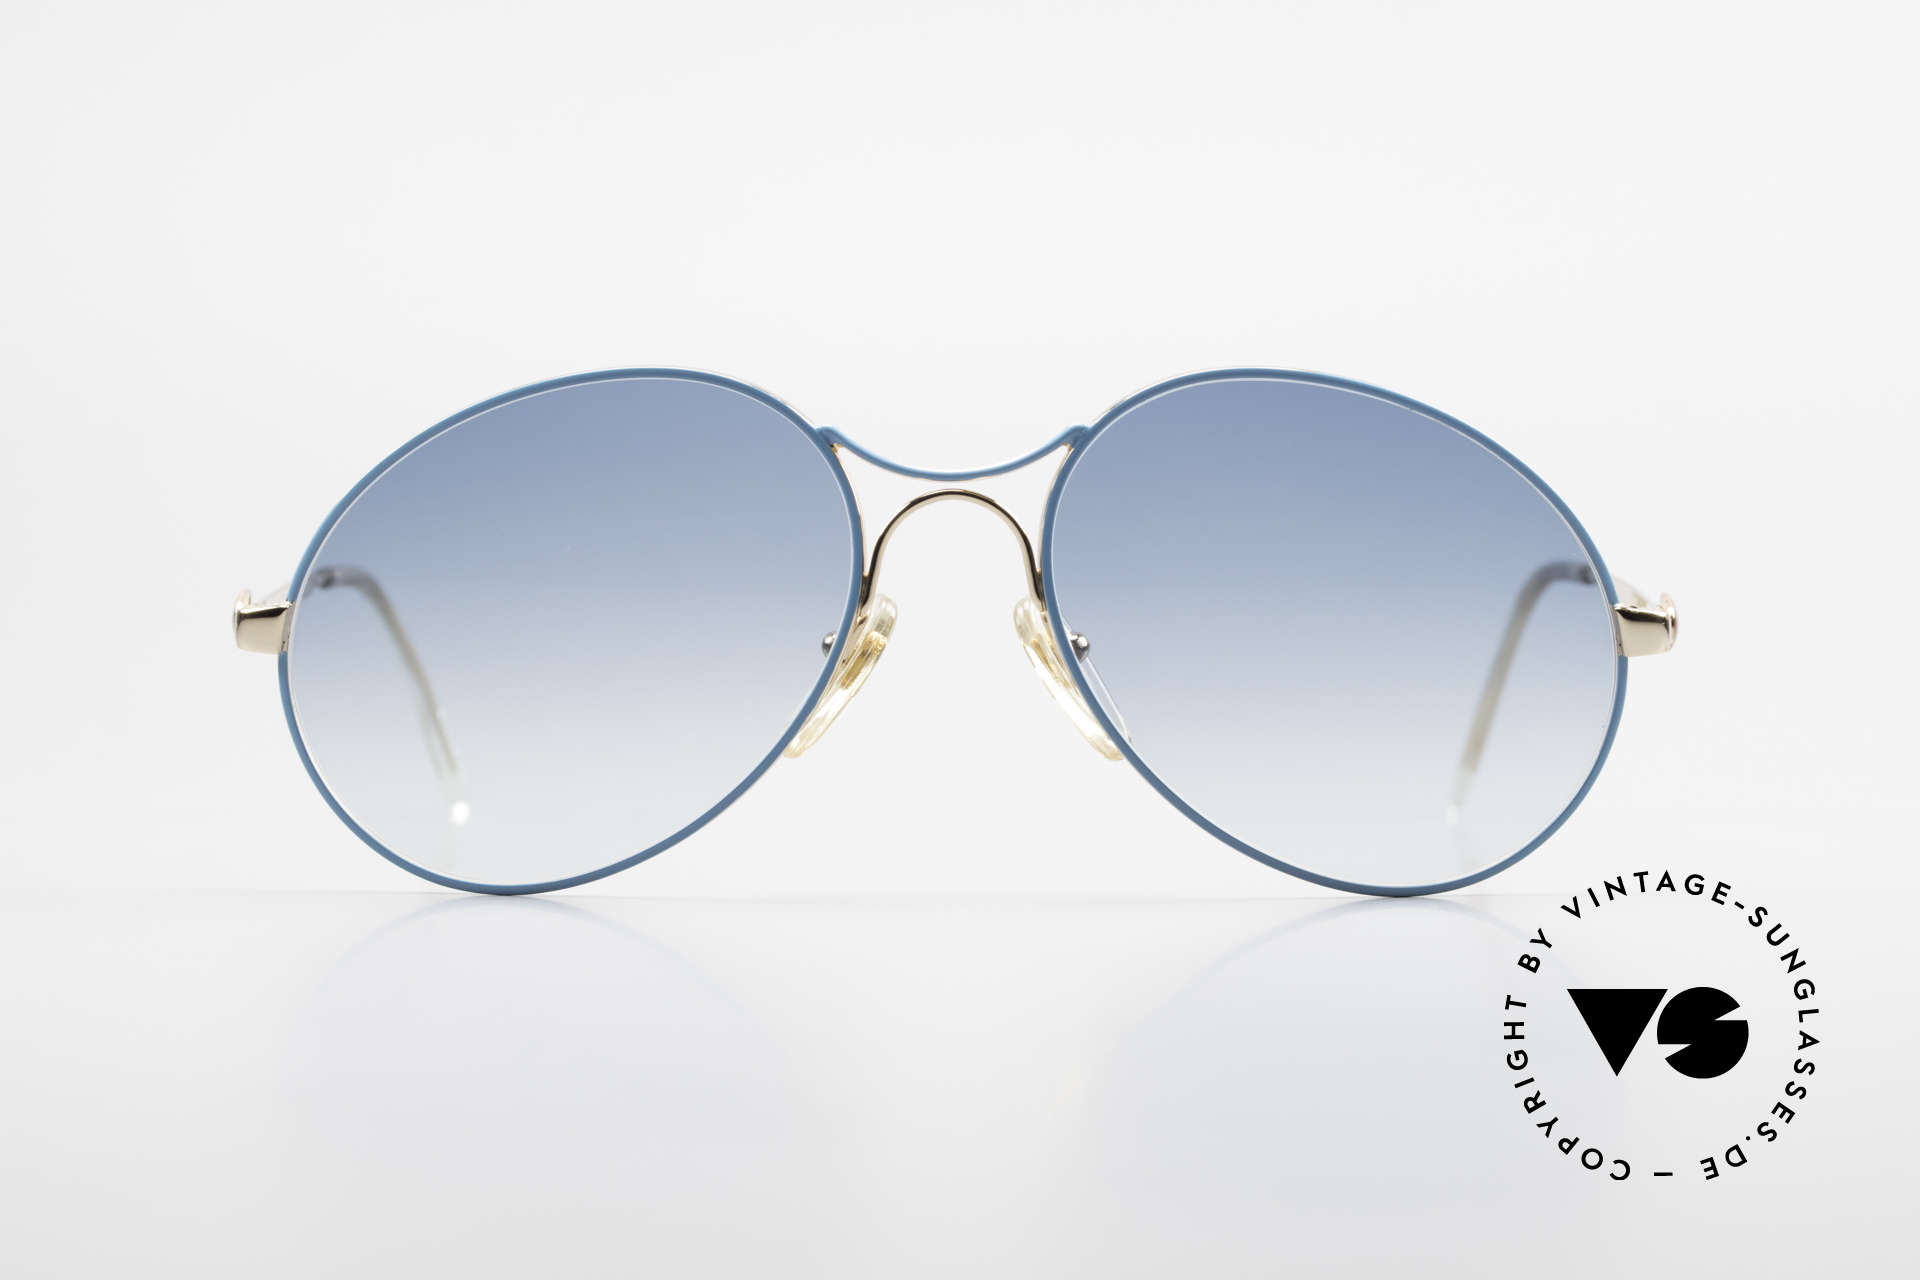 Bugatti 65985 No Retro Shades True Vintage, extraordinary frame design (simply striking), Made for Men